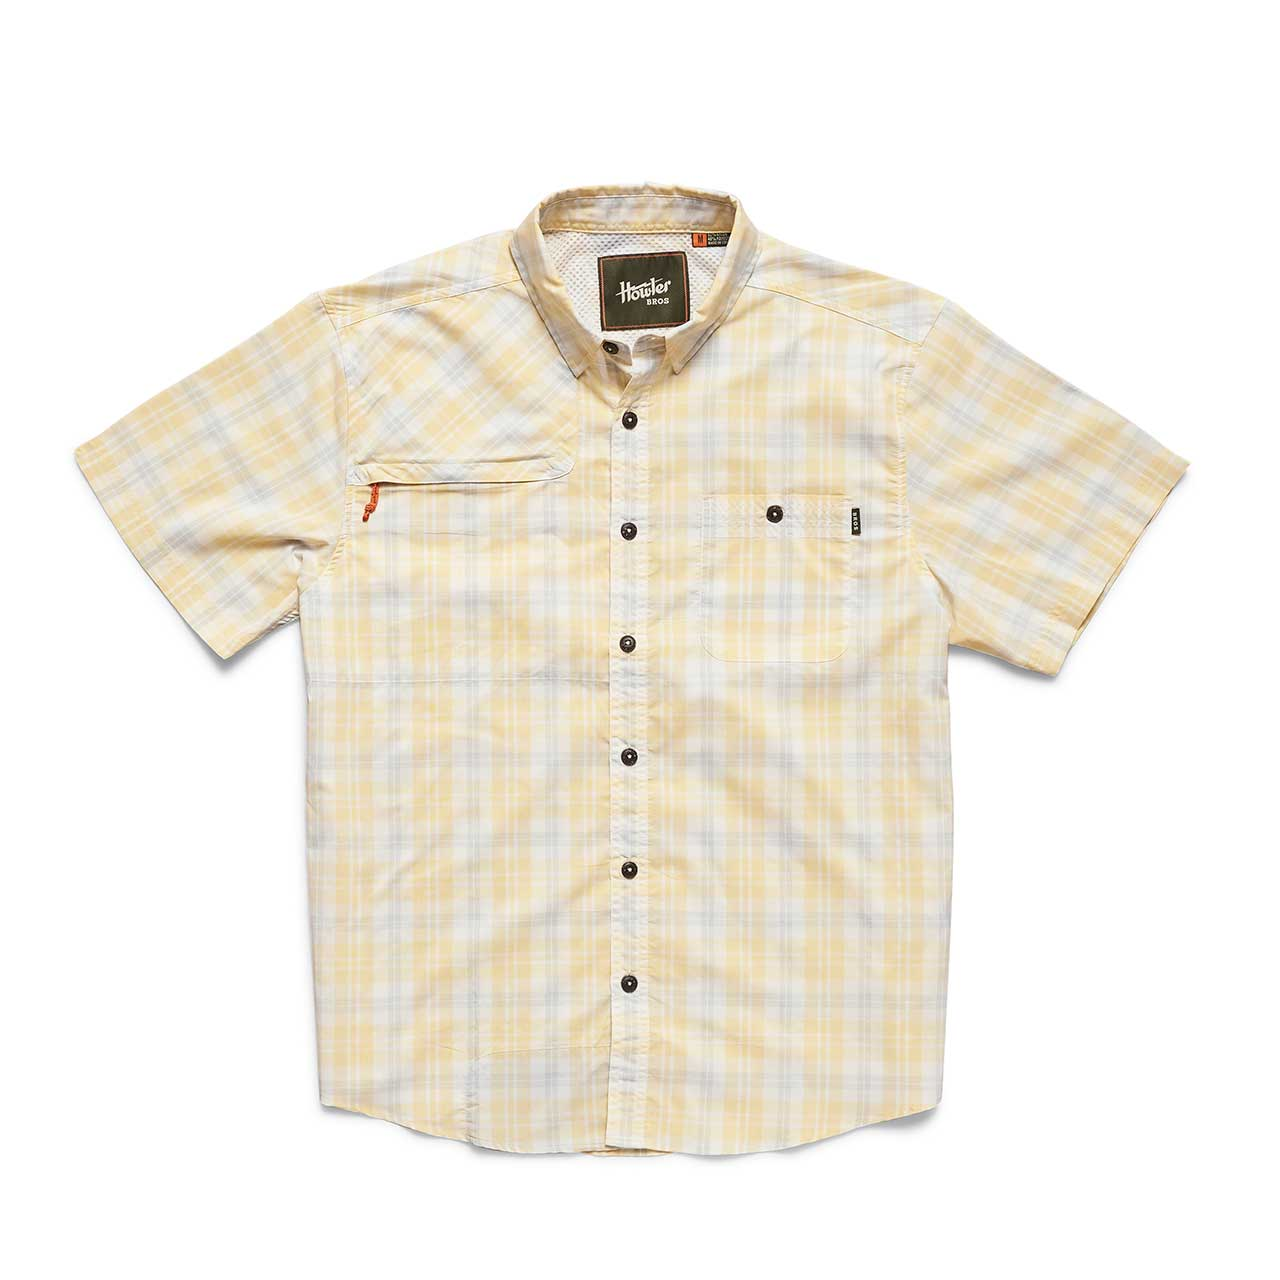 Howler Brothers Men's Matagorda Short Sleeve Shirt | Size Small | Sunny Yellow | Campman